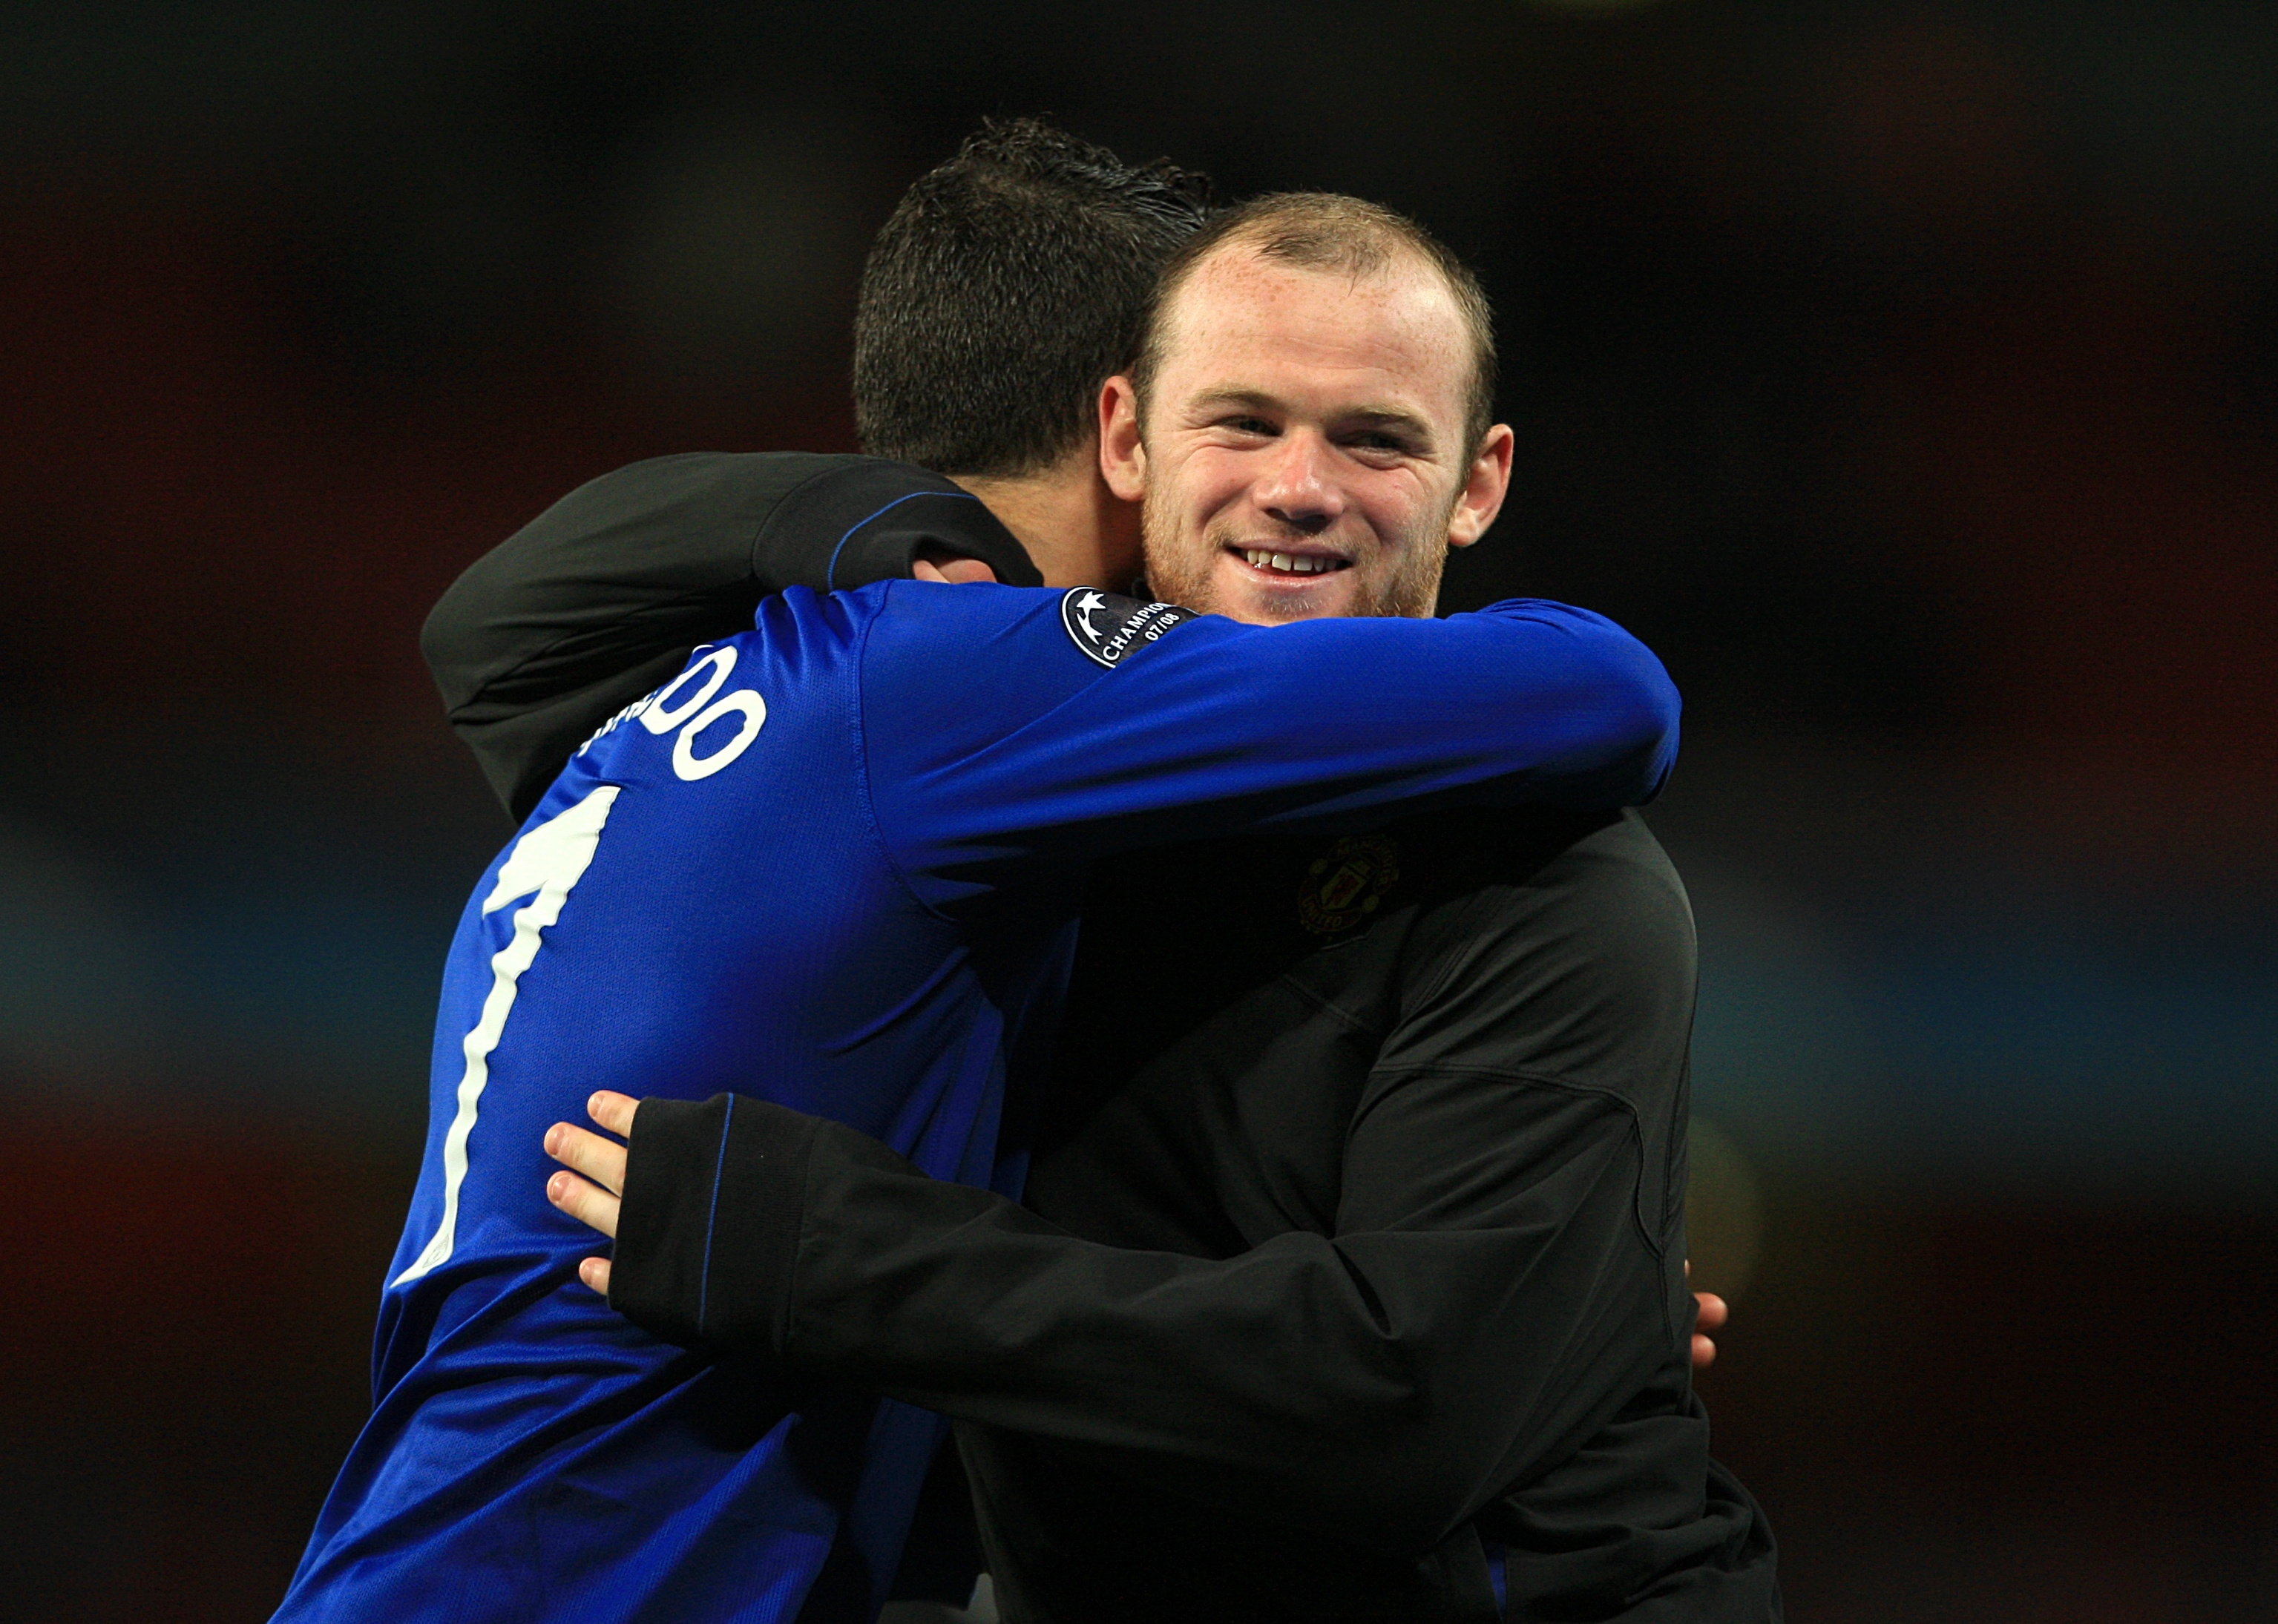 Rooney's England return is 'completely wrong', blasts Shilton